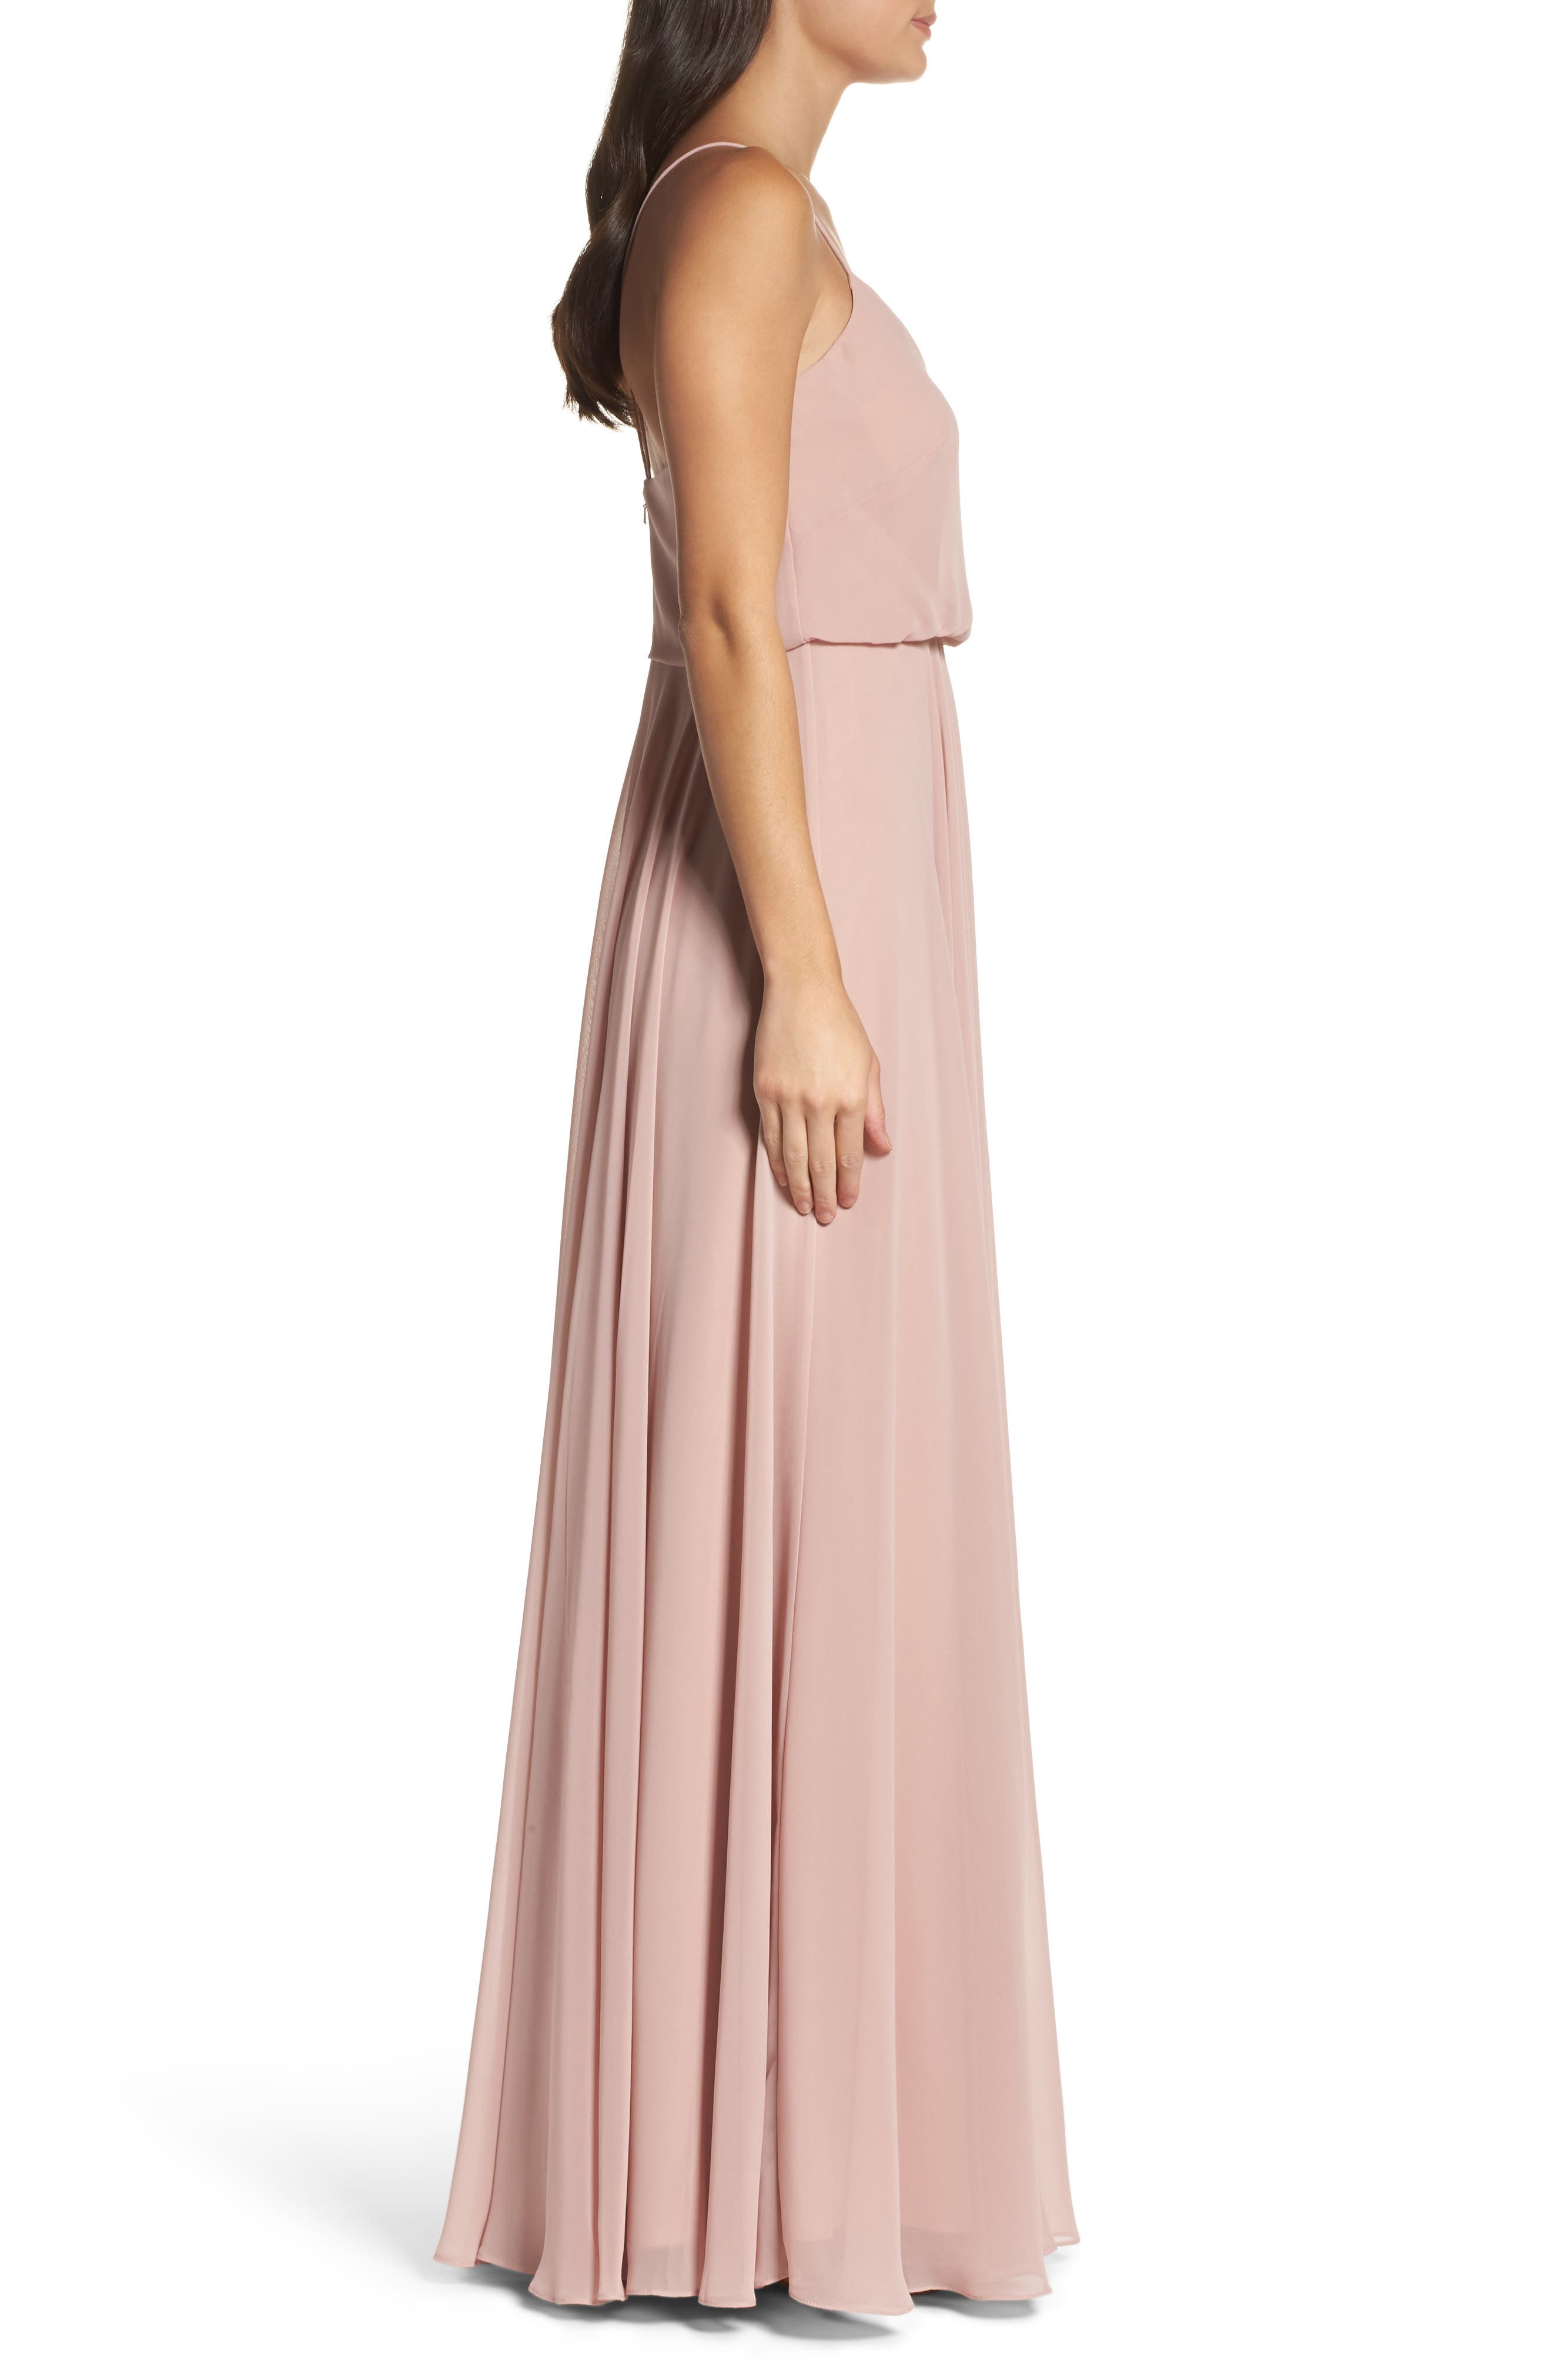 JENNY YOO, Inesse Chiffon V-Neck Spaghetti Strap Gown, Alternate thumbnail 4, color, WHIPPED APRICOT